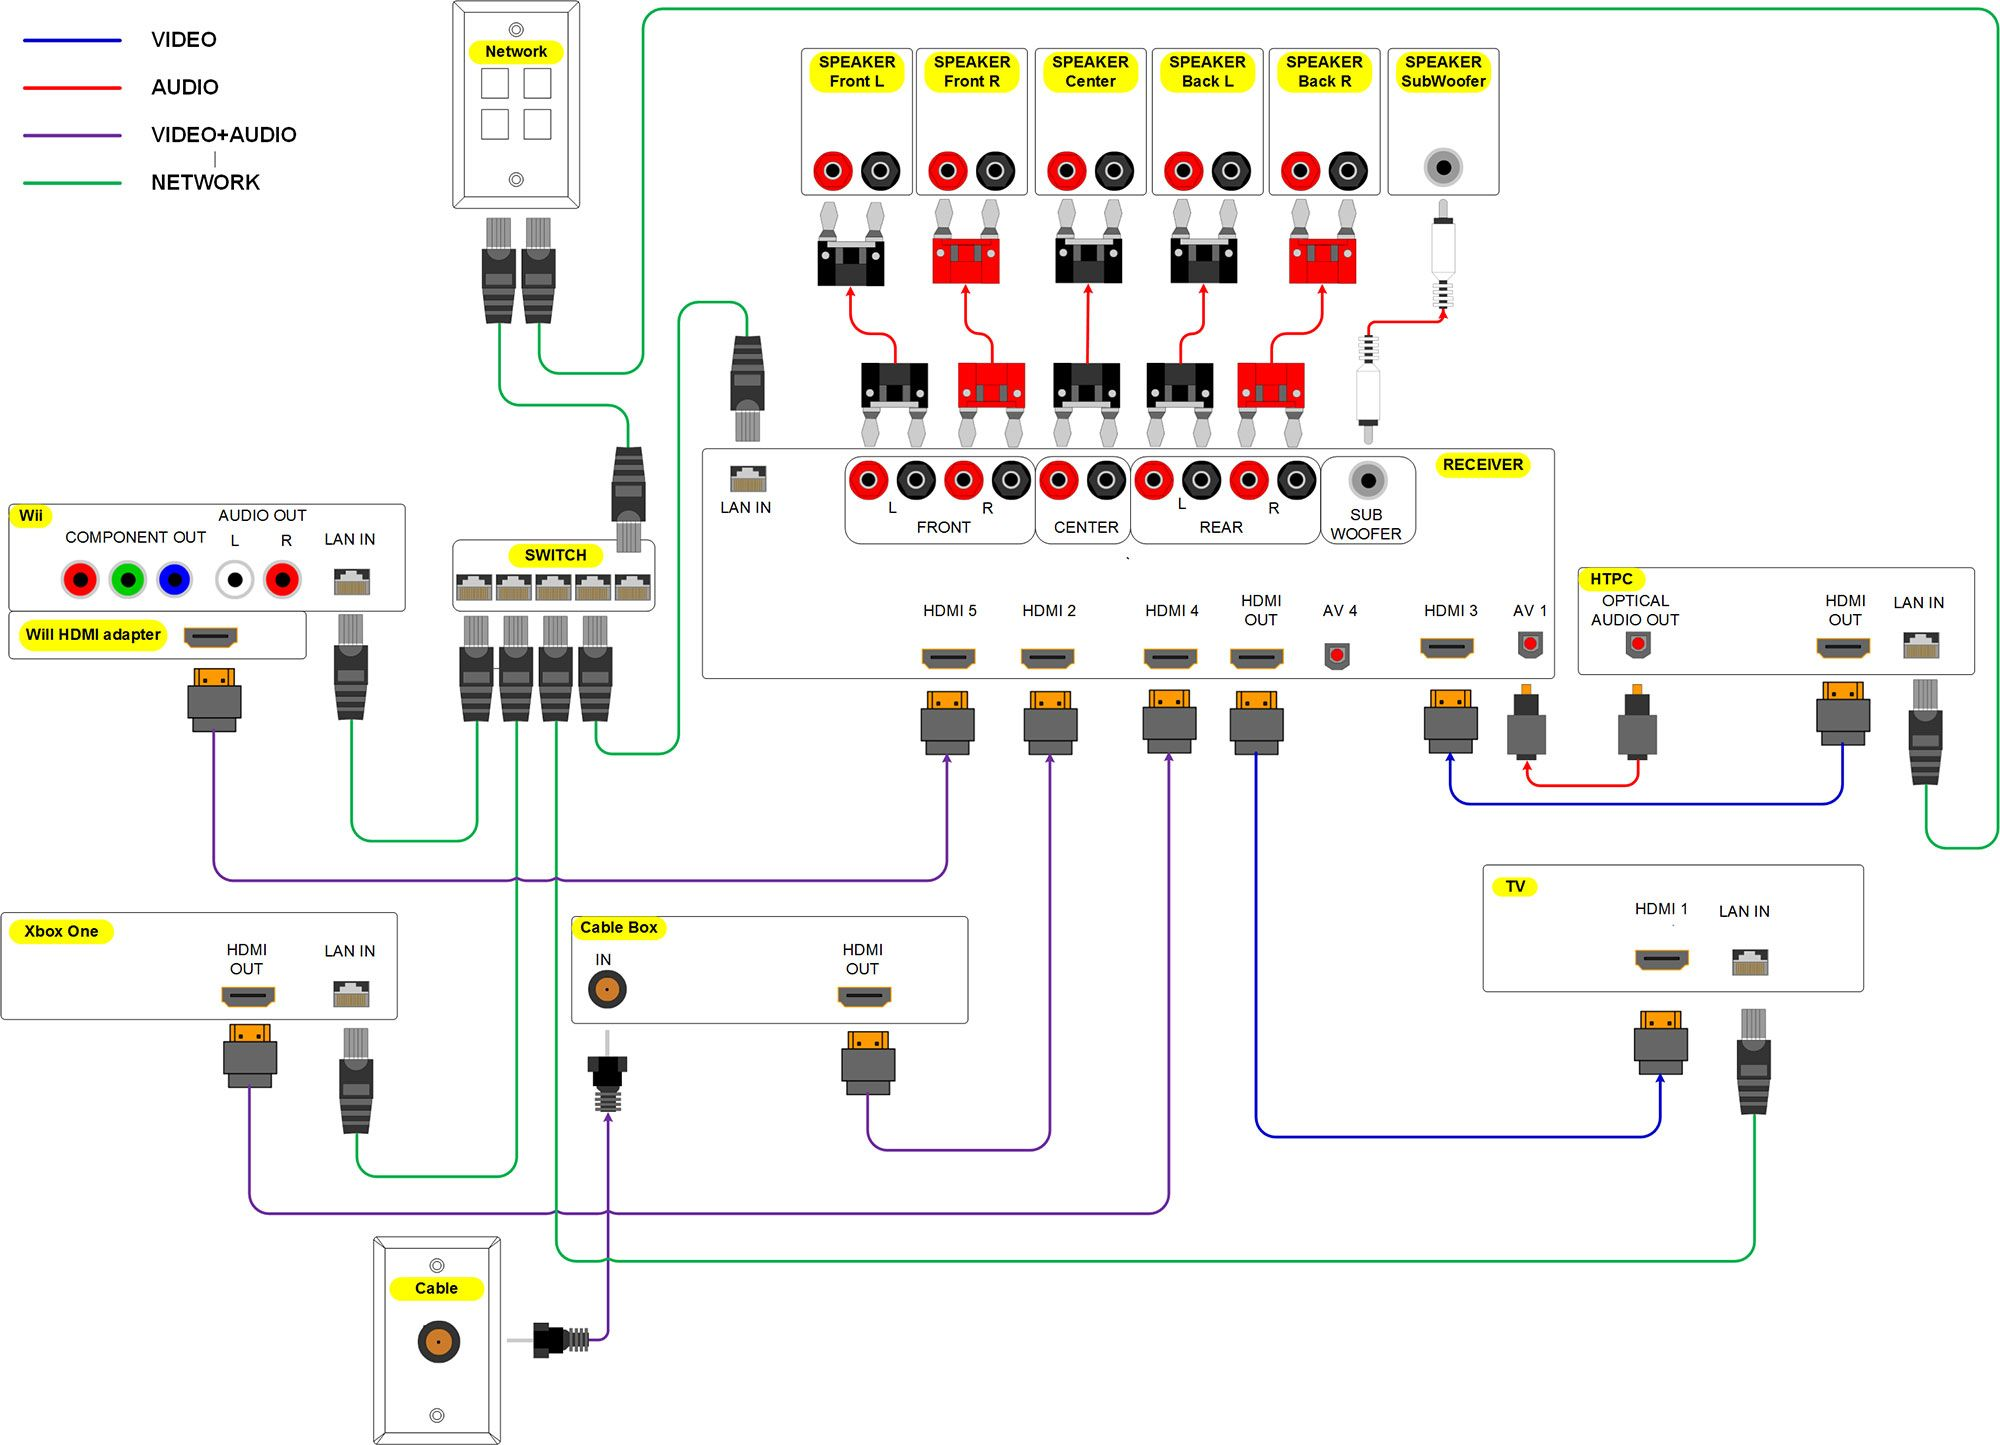 ae3ef715ed5d6ac384ec9c2b84075aef home speaker wiring diagram home audio wiring diagram \u2022 wiring wiring diagram av receiver at soozxer.org